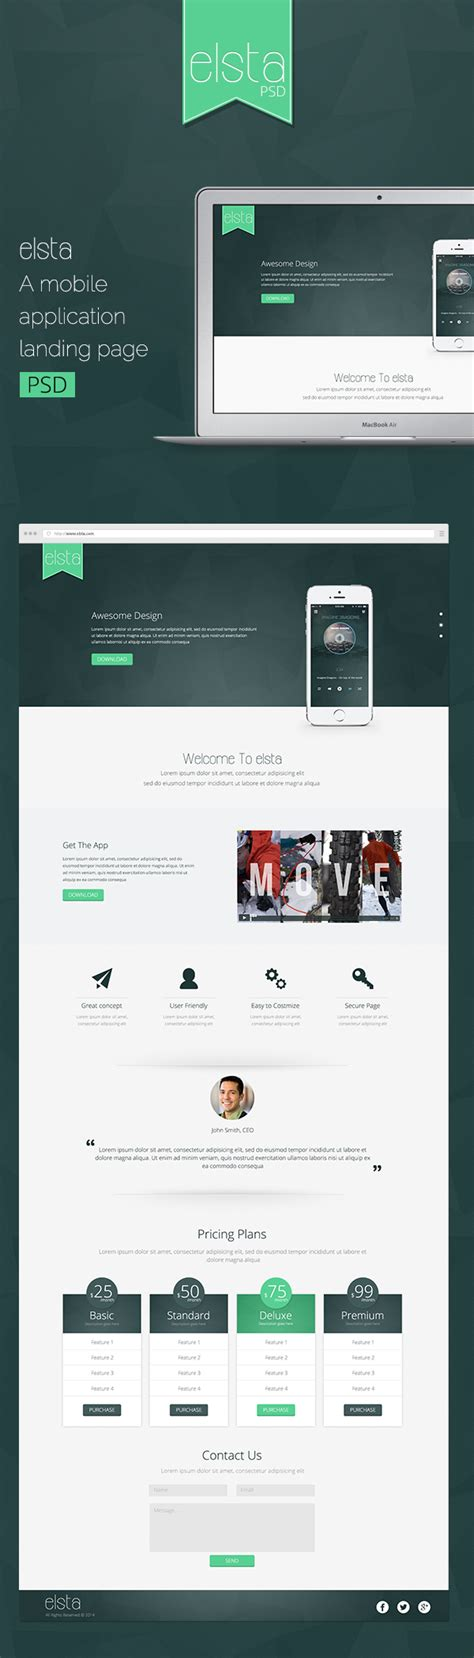 elsta a mobile application landing page free psd on